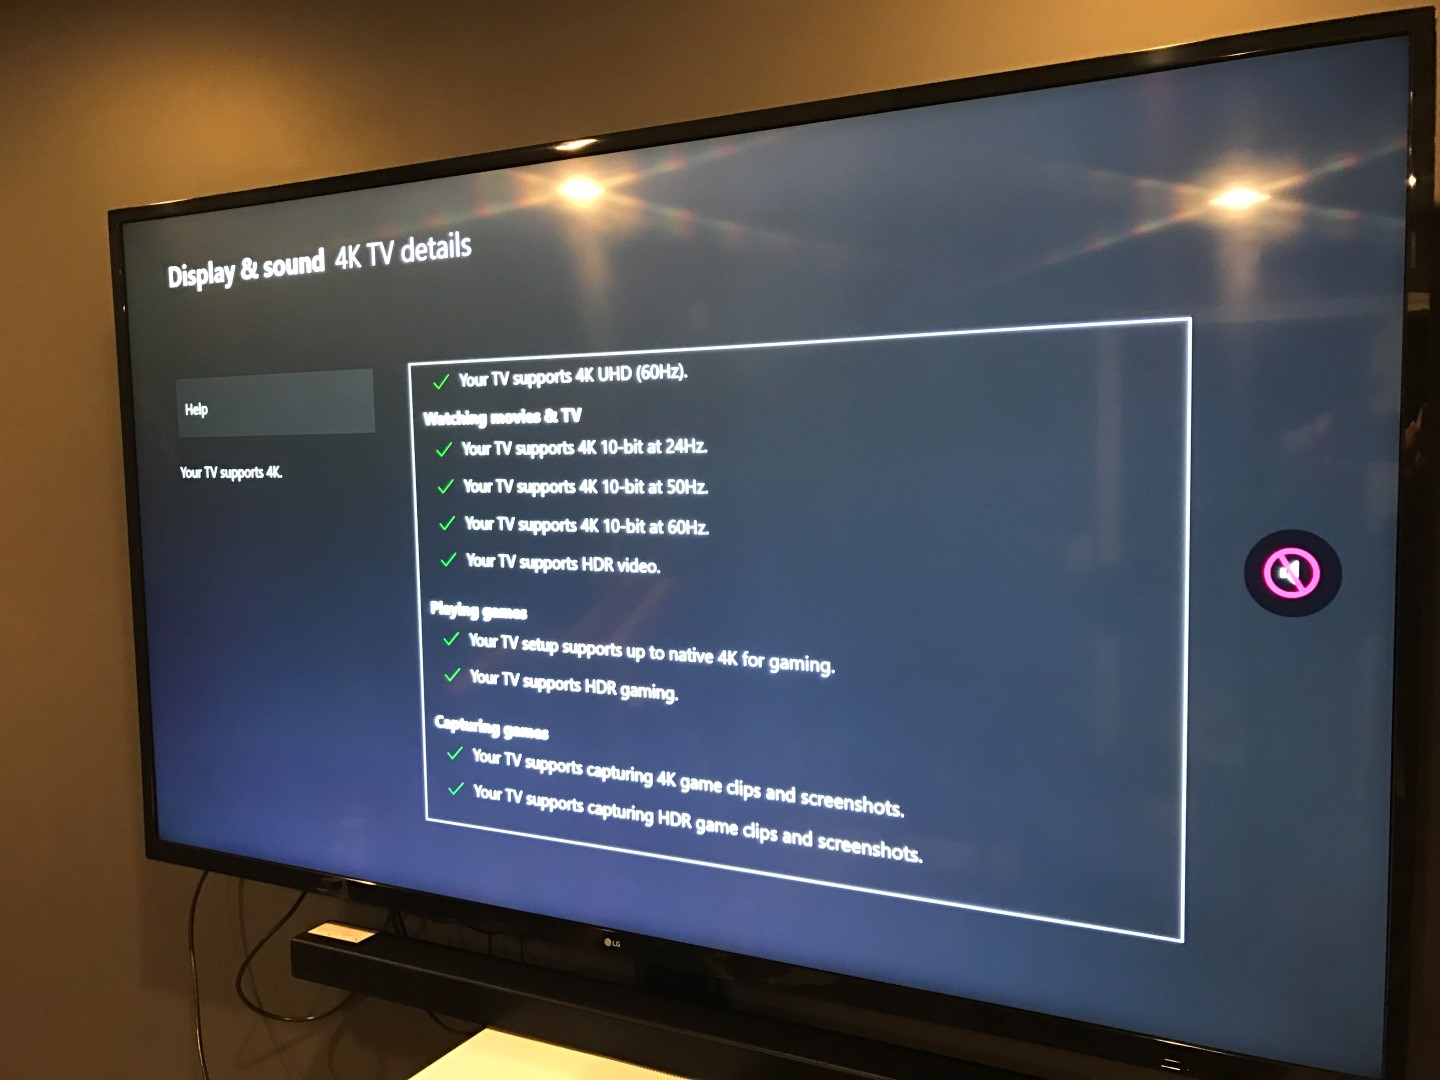 LG UJ6200 TV Xbox One X settings